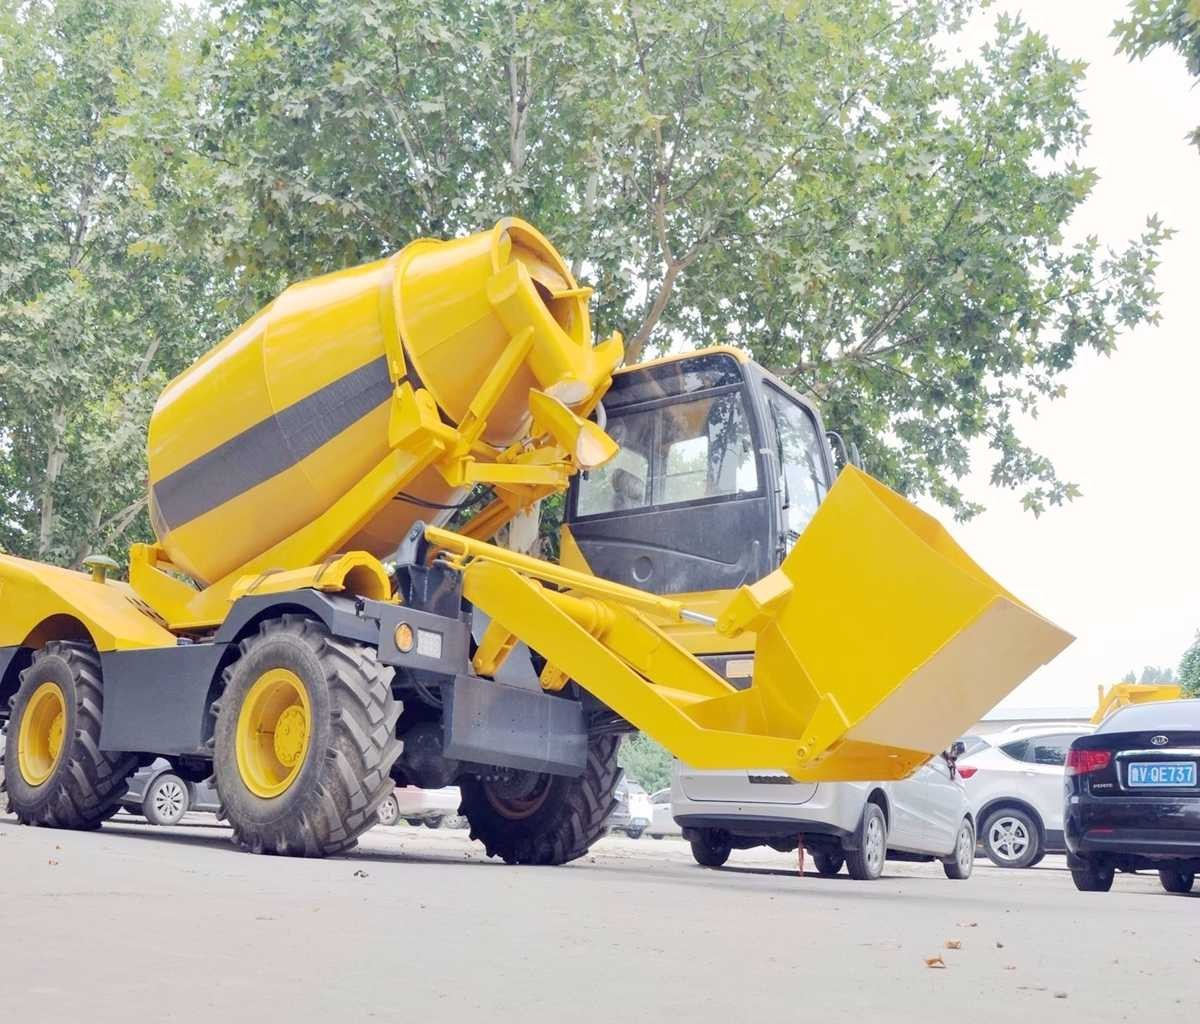 Sales QGMC3500 Self Charging Mobile Concrete Mixer For Sale, Buy QGMC3500 Self Charging Mobile Concrete Mixer For Sale, QGMC3500 Self Charging Mobile Concrete Mixer For Sale Factory, QGMC3500 Self Charging Mobile Concrete Mixer For Sale Brands